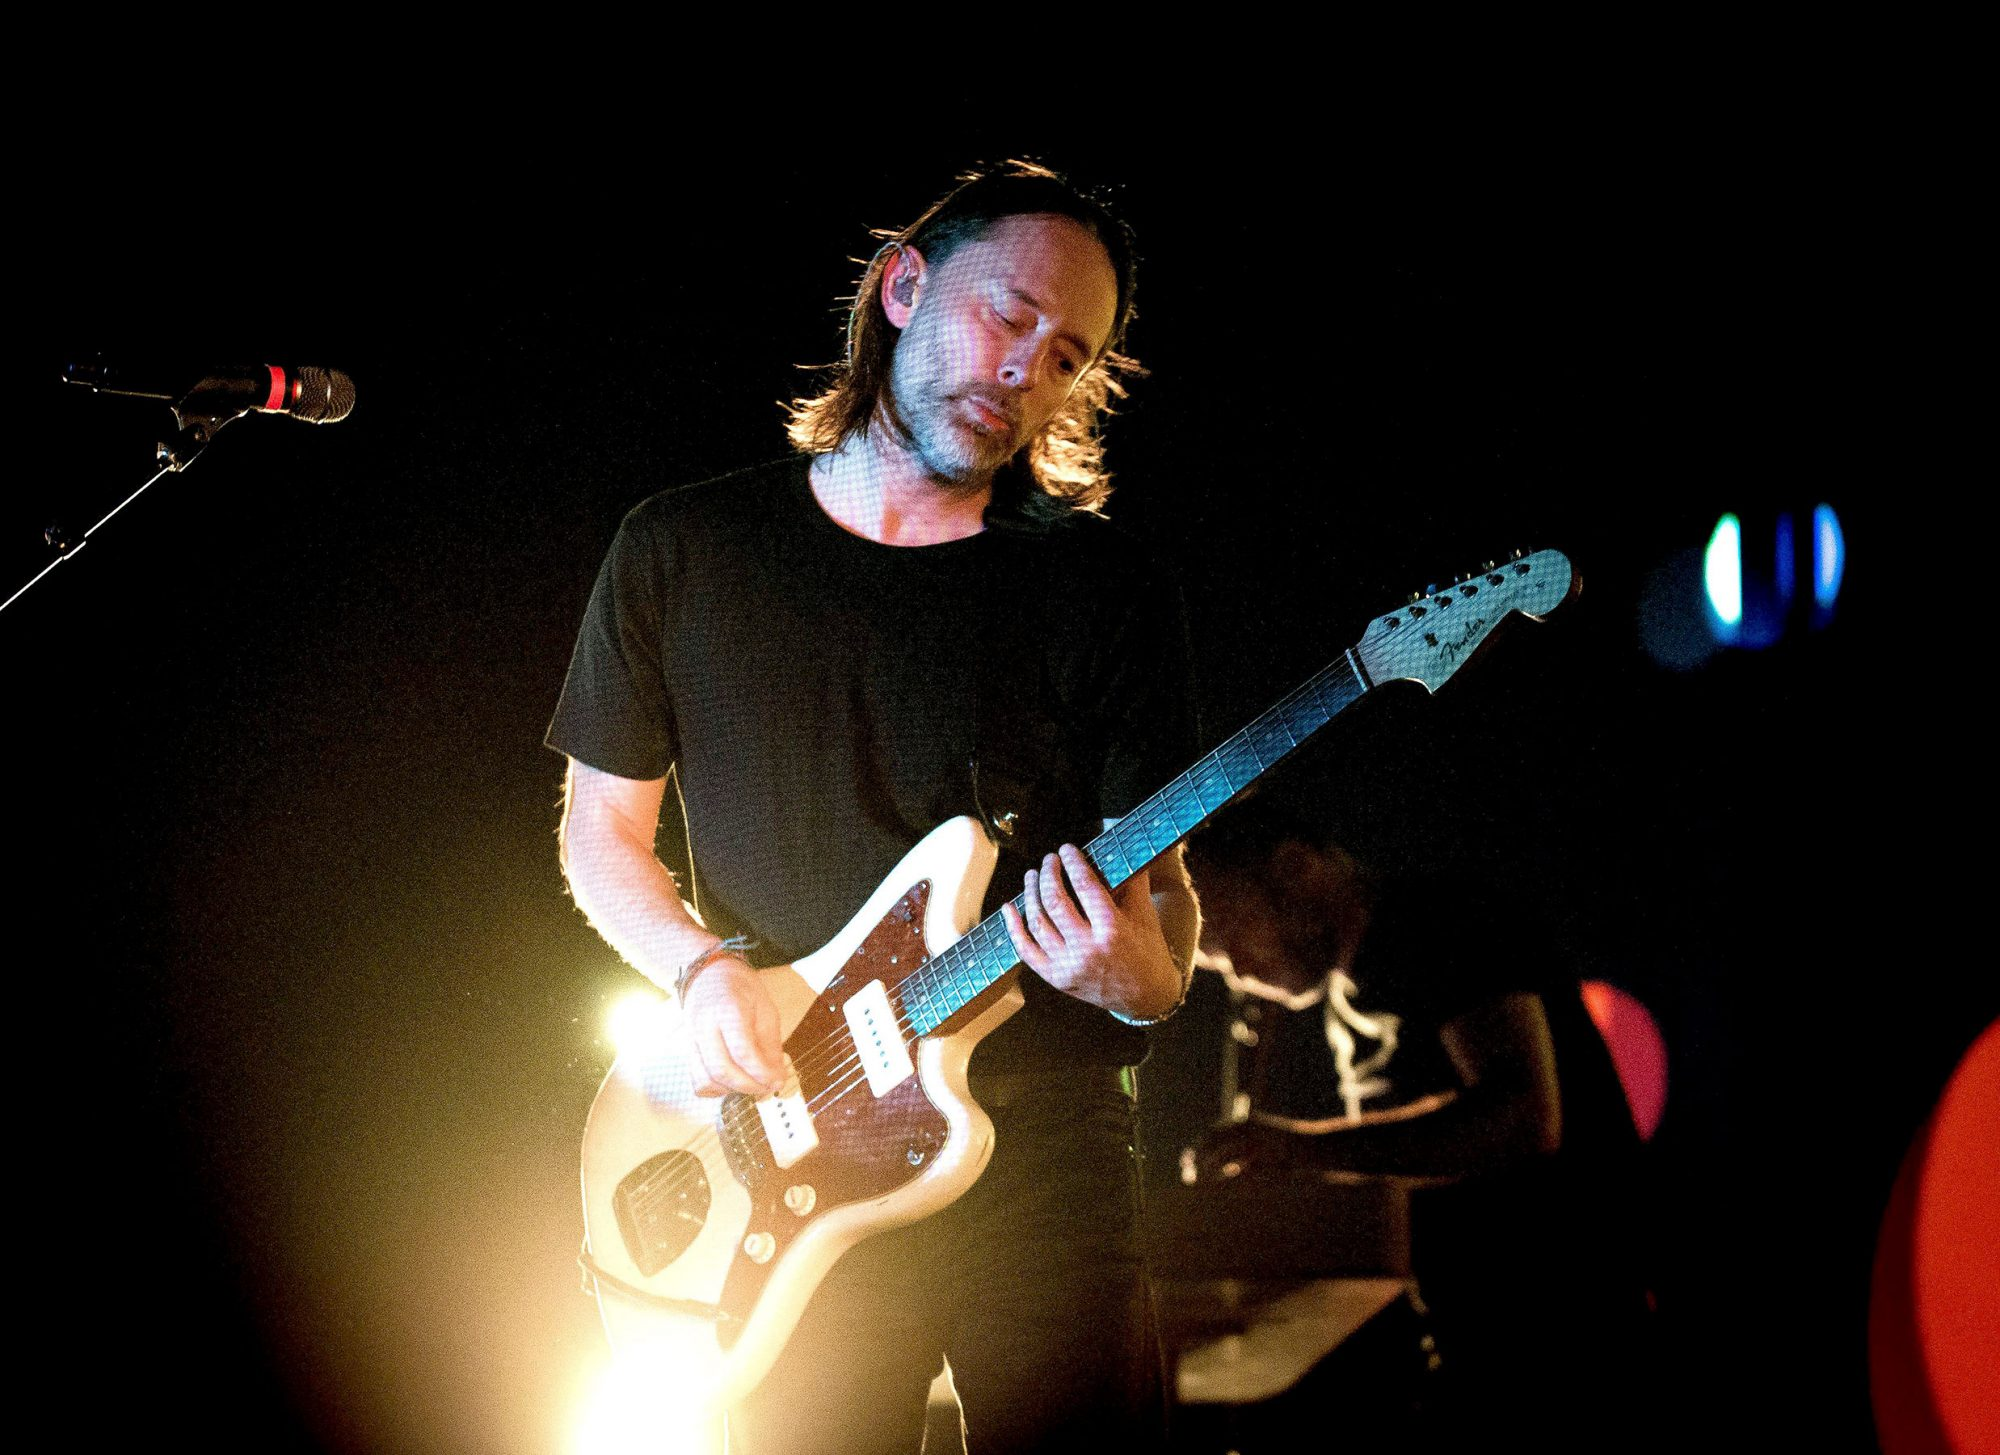 Thom Yorke in concert at The Chelsea at The Cosmopolitan of Las Vegas, USA - 22 Dec 2018